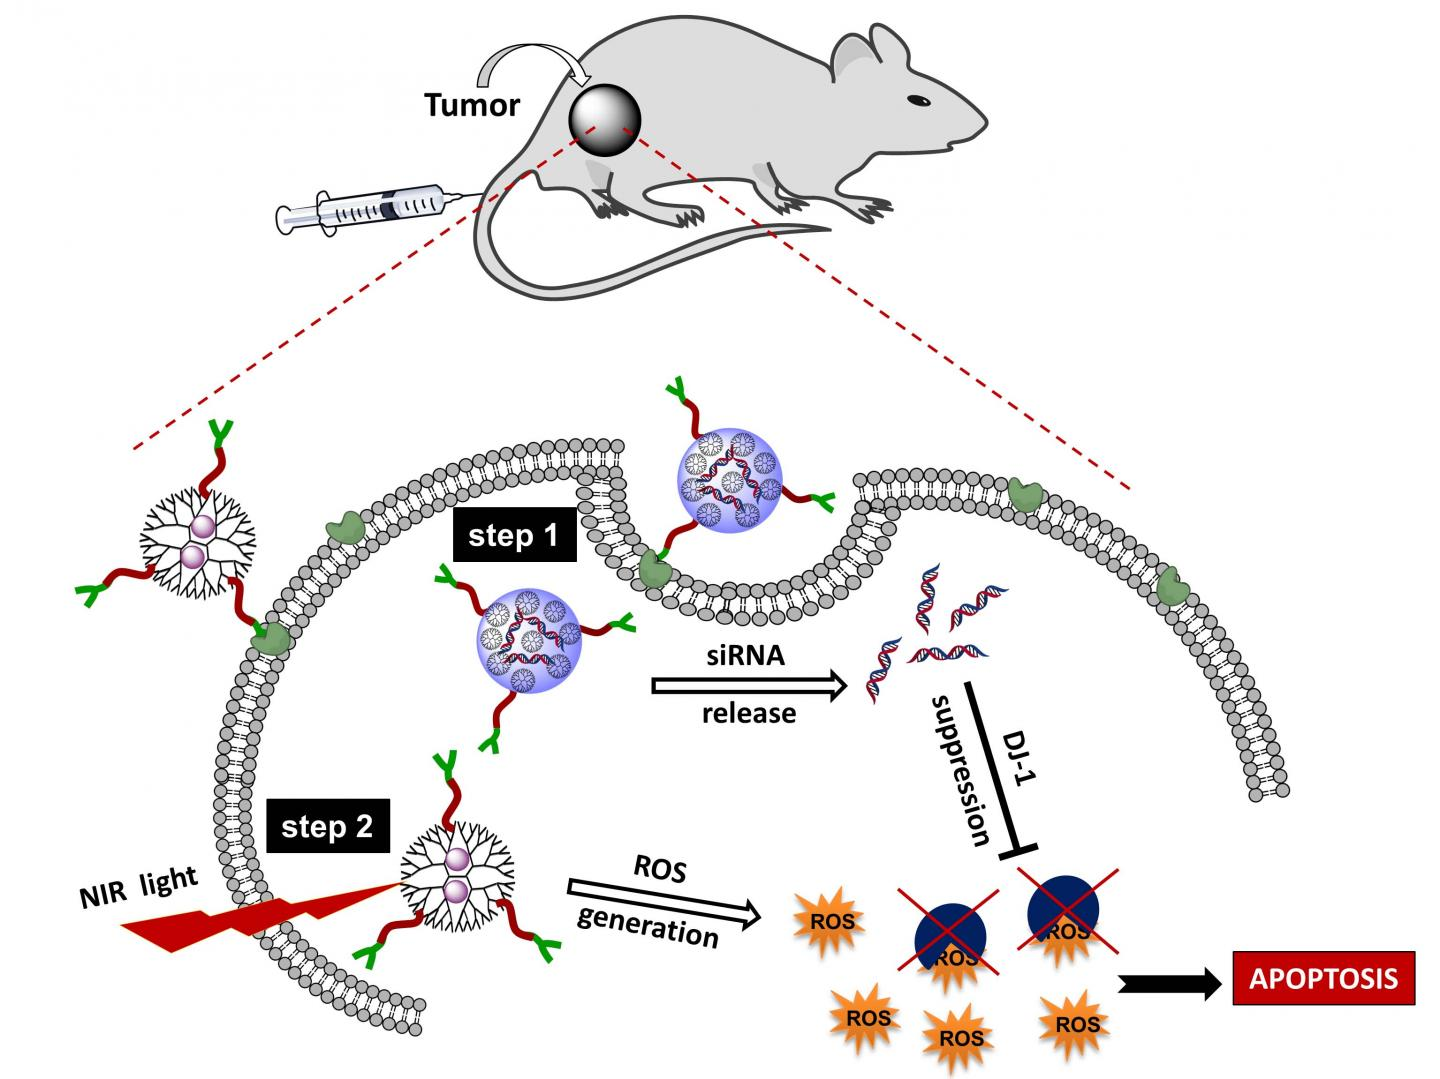 Advance In Photodynamic Therapy Offers New Approach To Ovarian Cancer